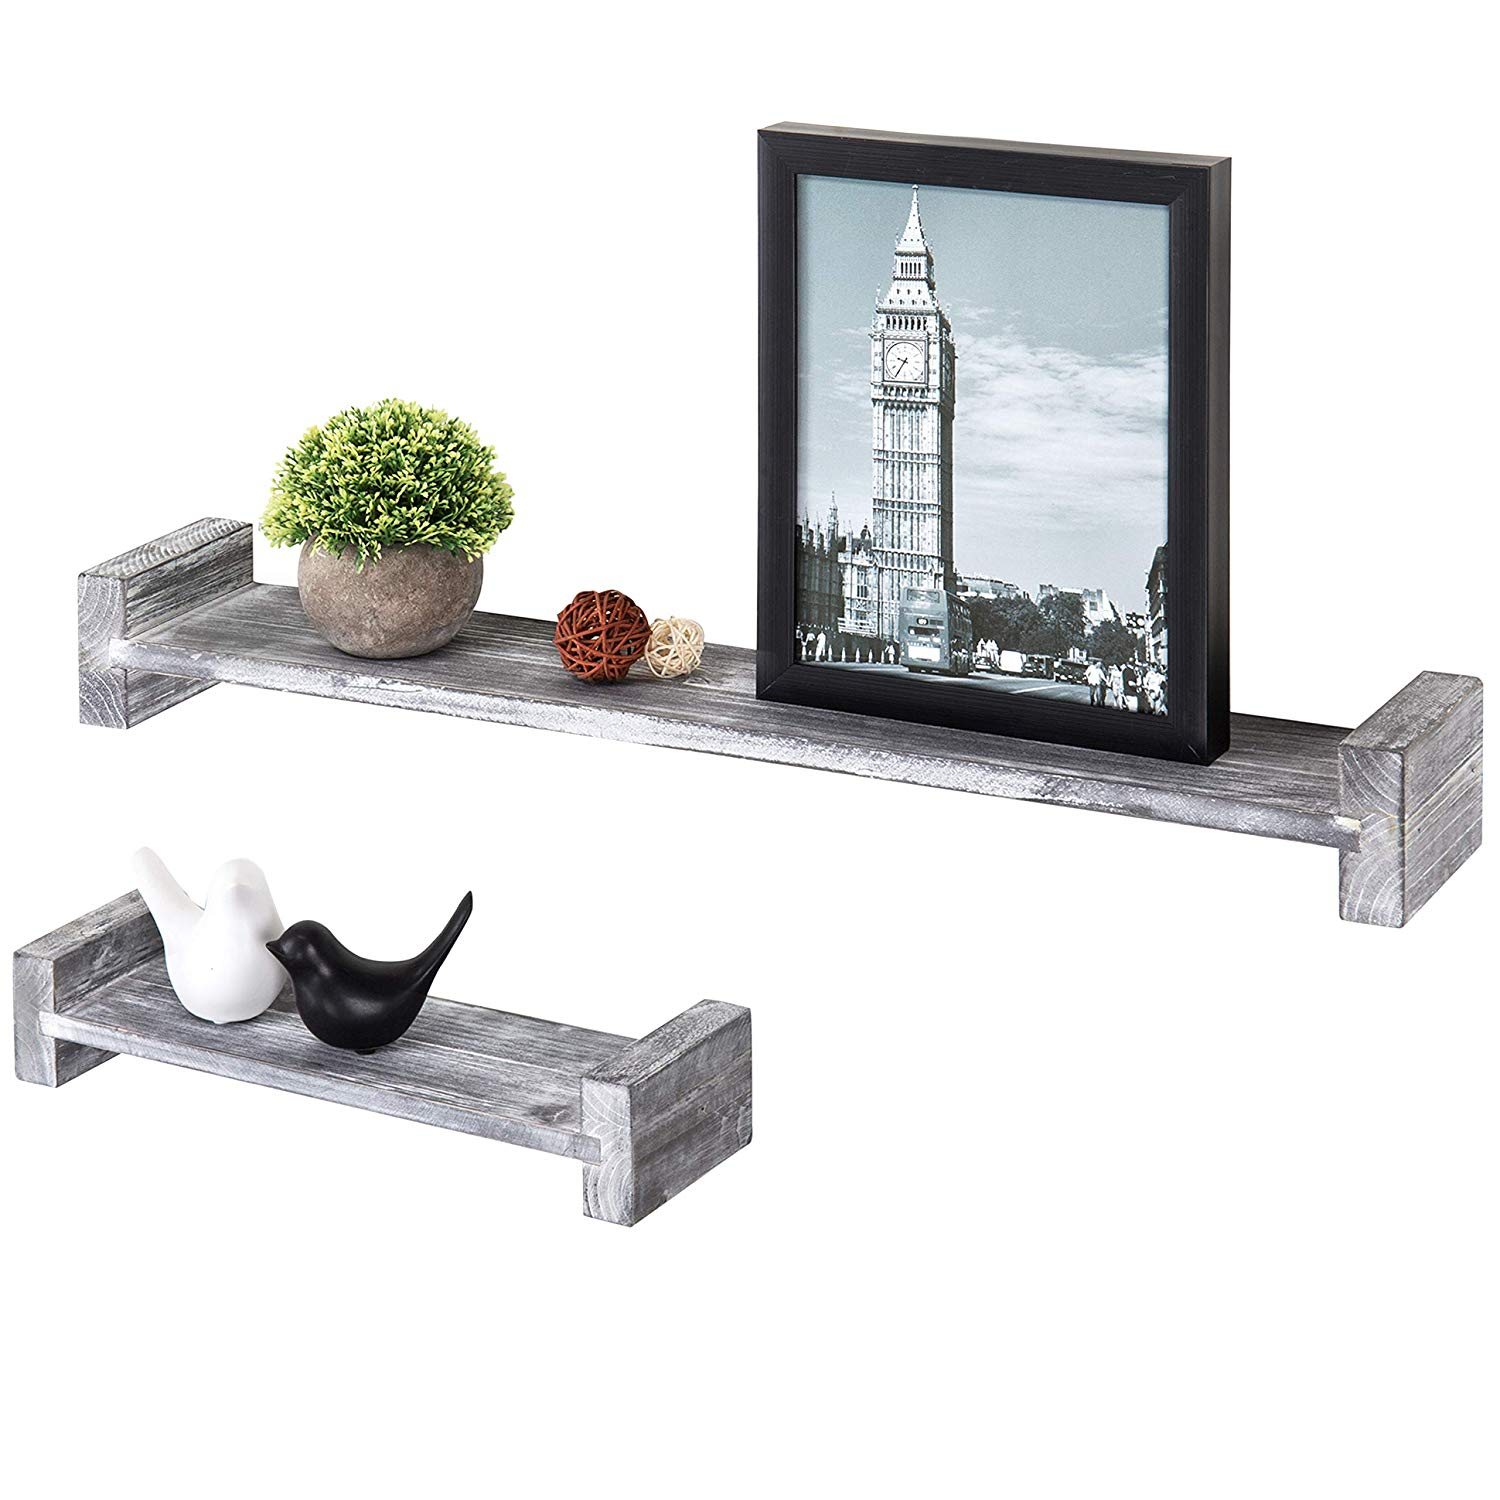 mygift set distressed wood wall mounted floating grey shelves inch gray home kitchen shelving bathroom ideas small stand for cable box and dvd player glasgow bracket system big